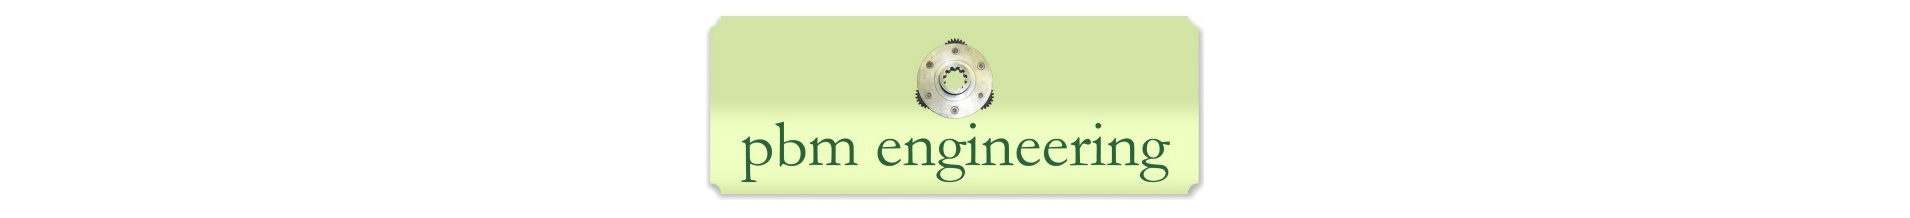 pbm engineering